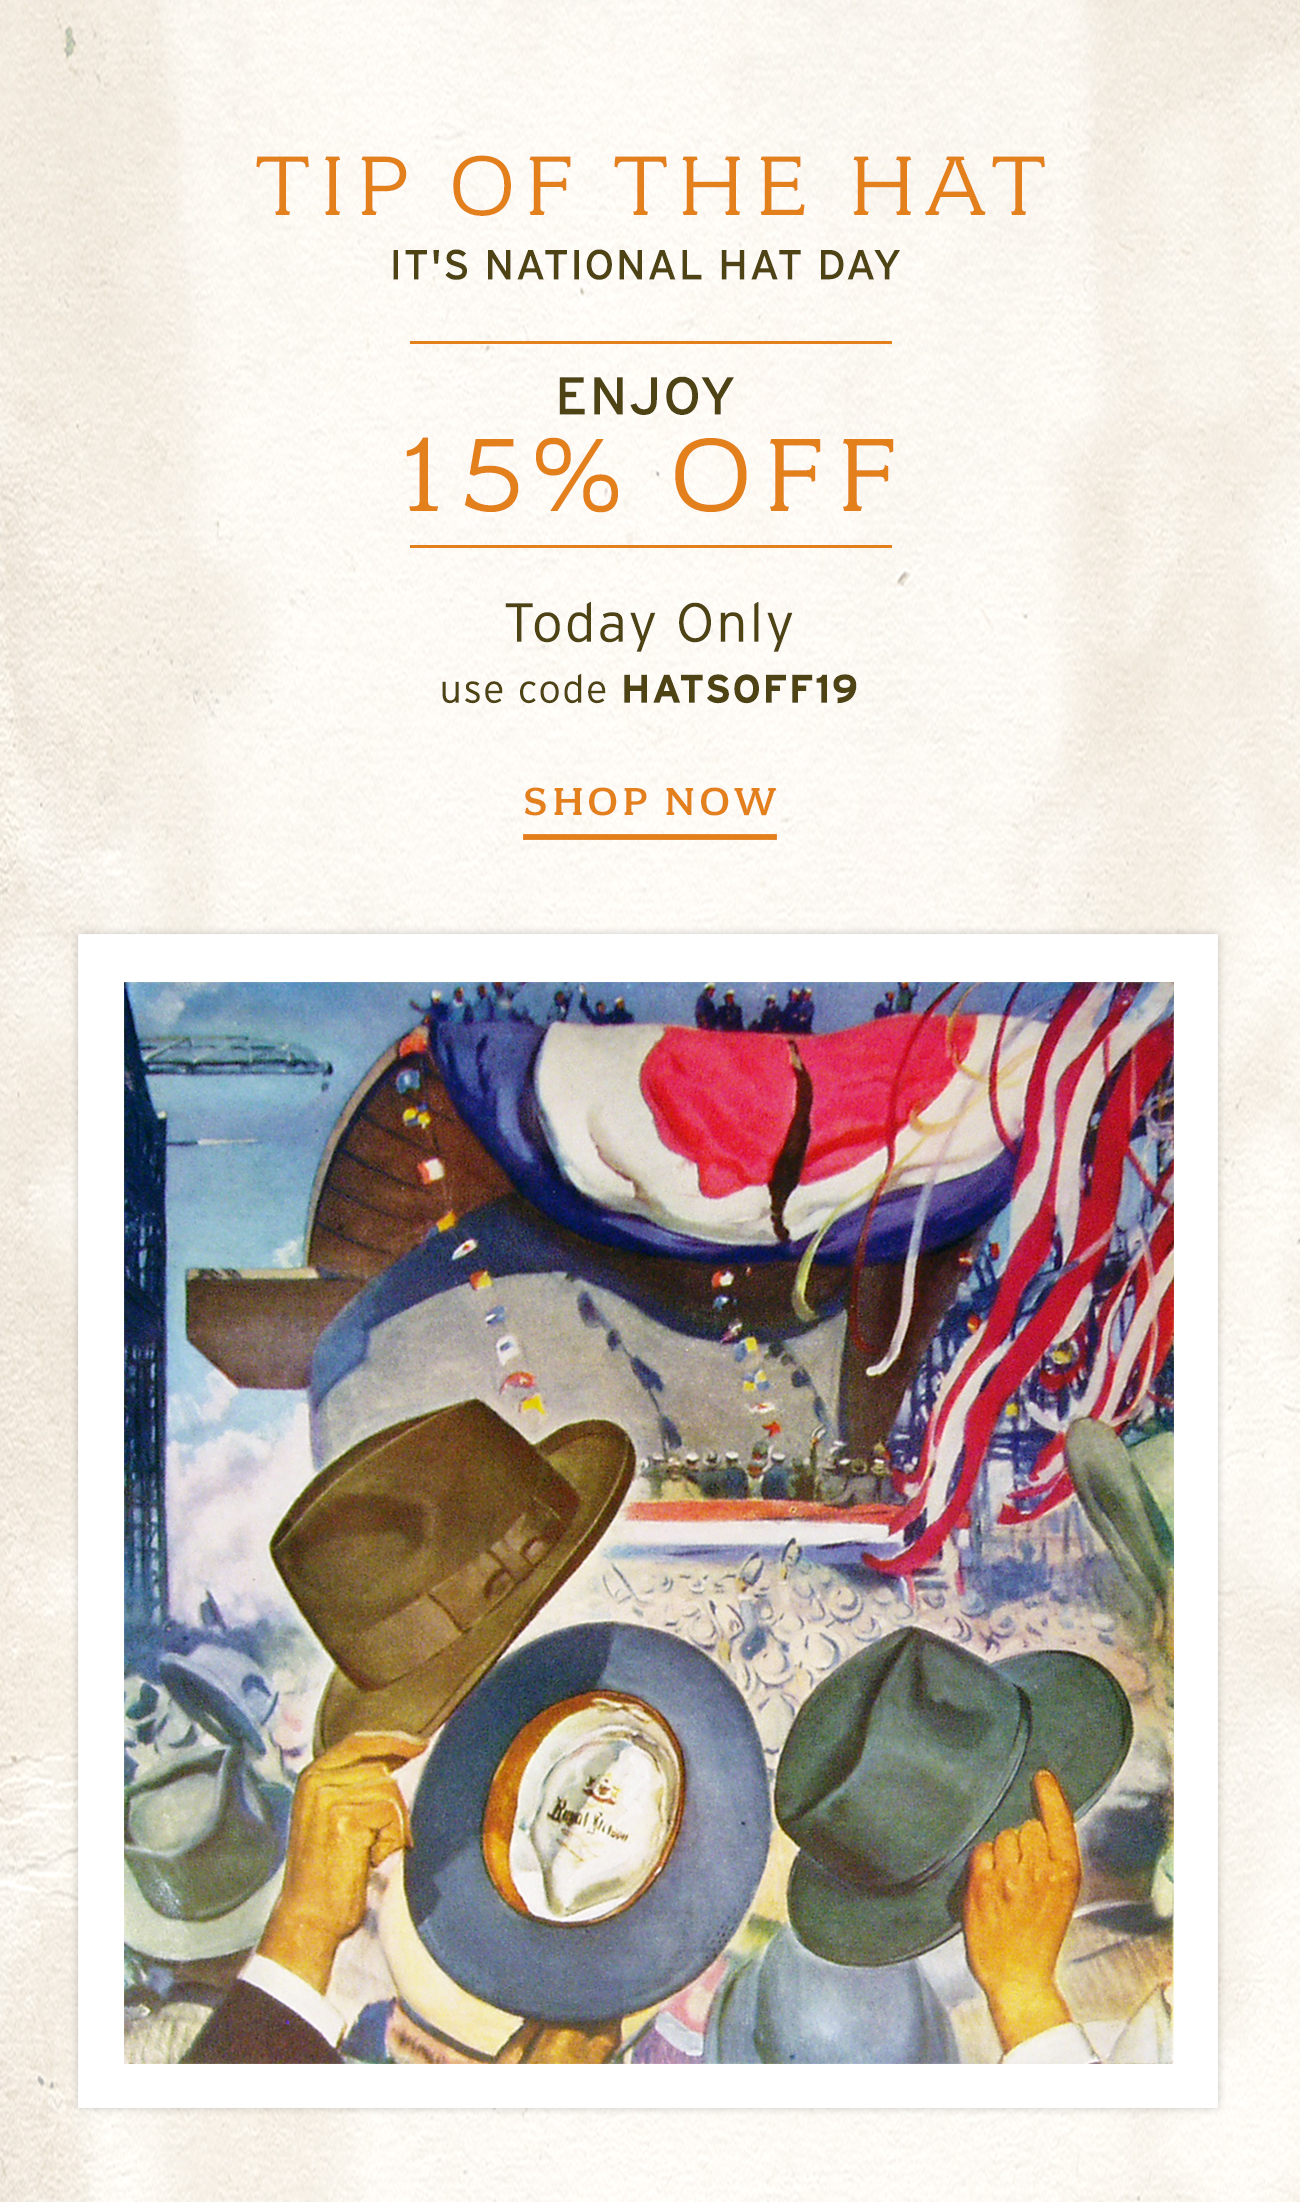 Tip Of The Day It's National Hat Day | Enjoy 15% Off Today Only